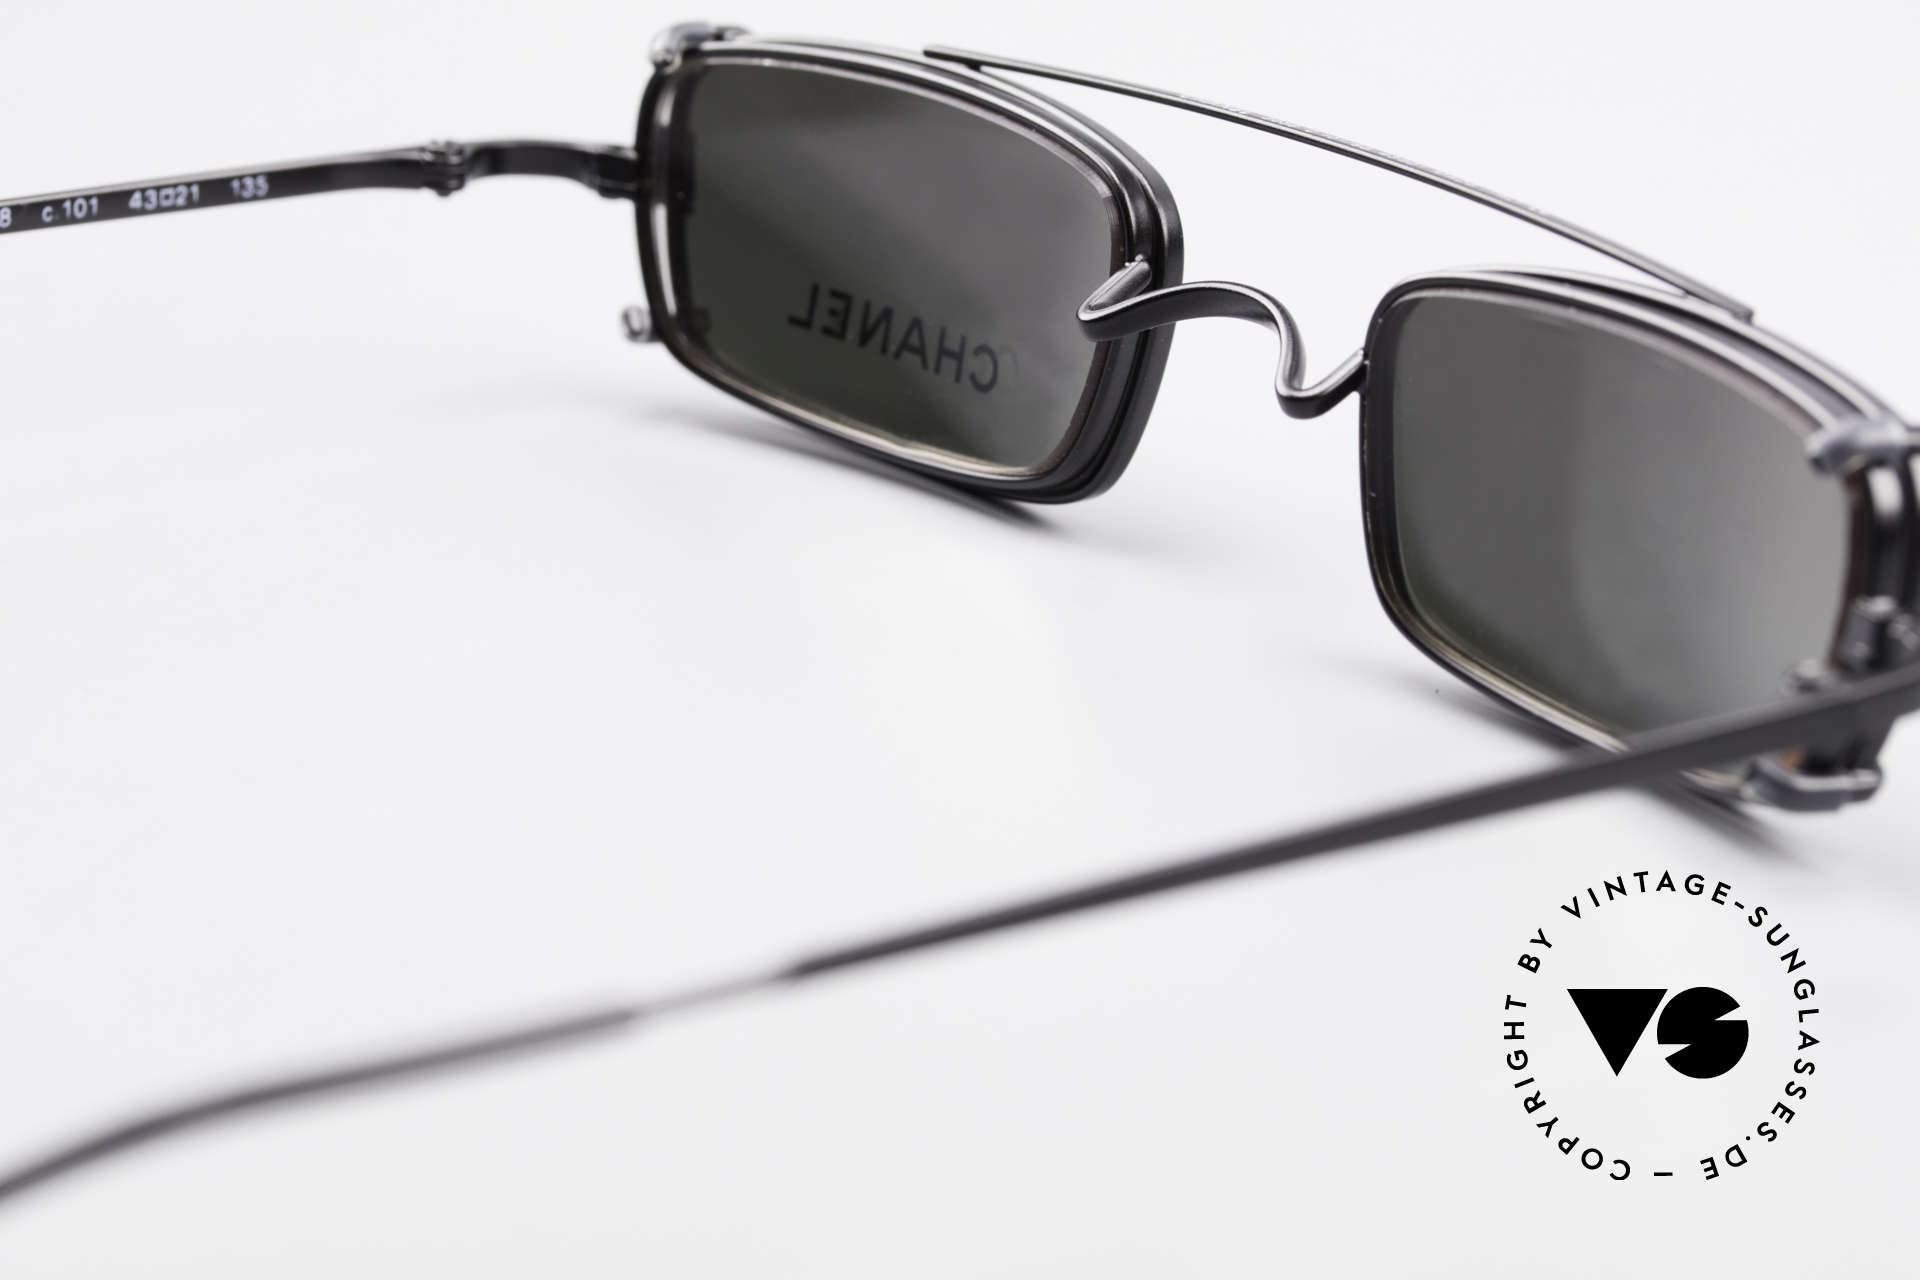 Chanel 2038 Luxury Glasses With Clip On, NO RETRO fashion, but a 20 years old vintage Original, Made for Men and Women